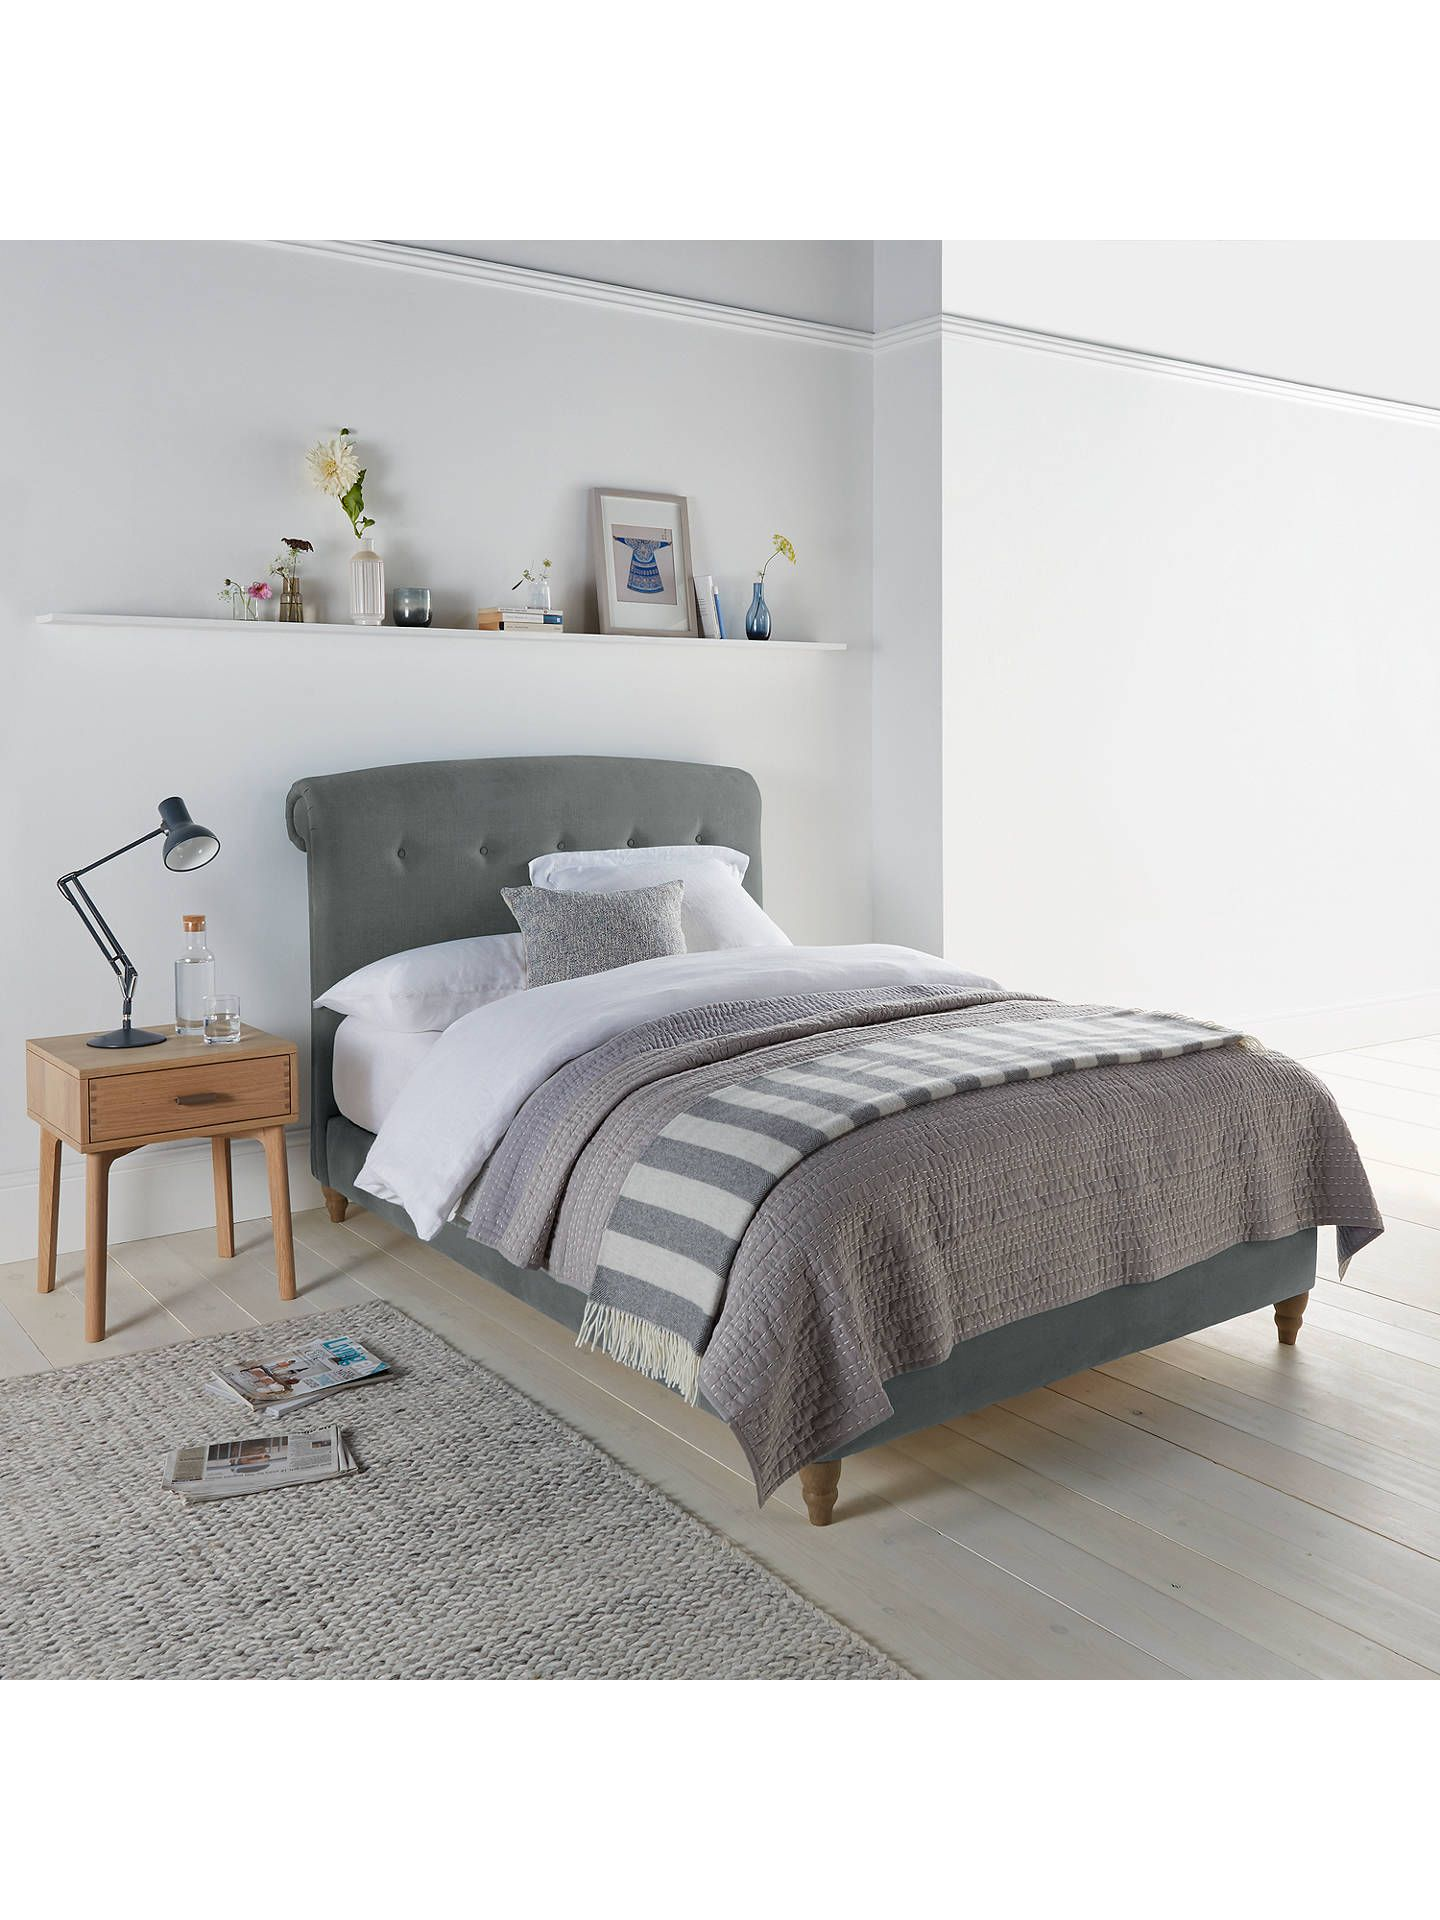 Peachy bed frame by loaf at john lewis in clever linen super king